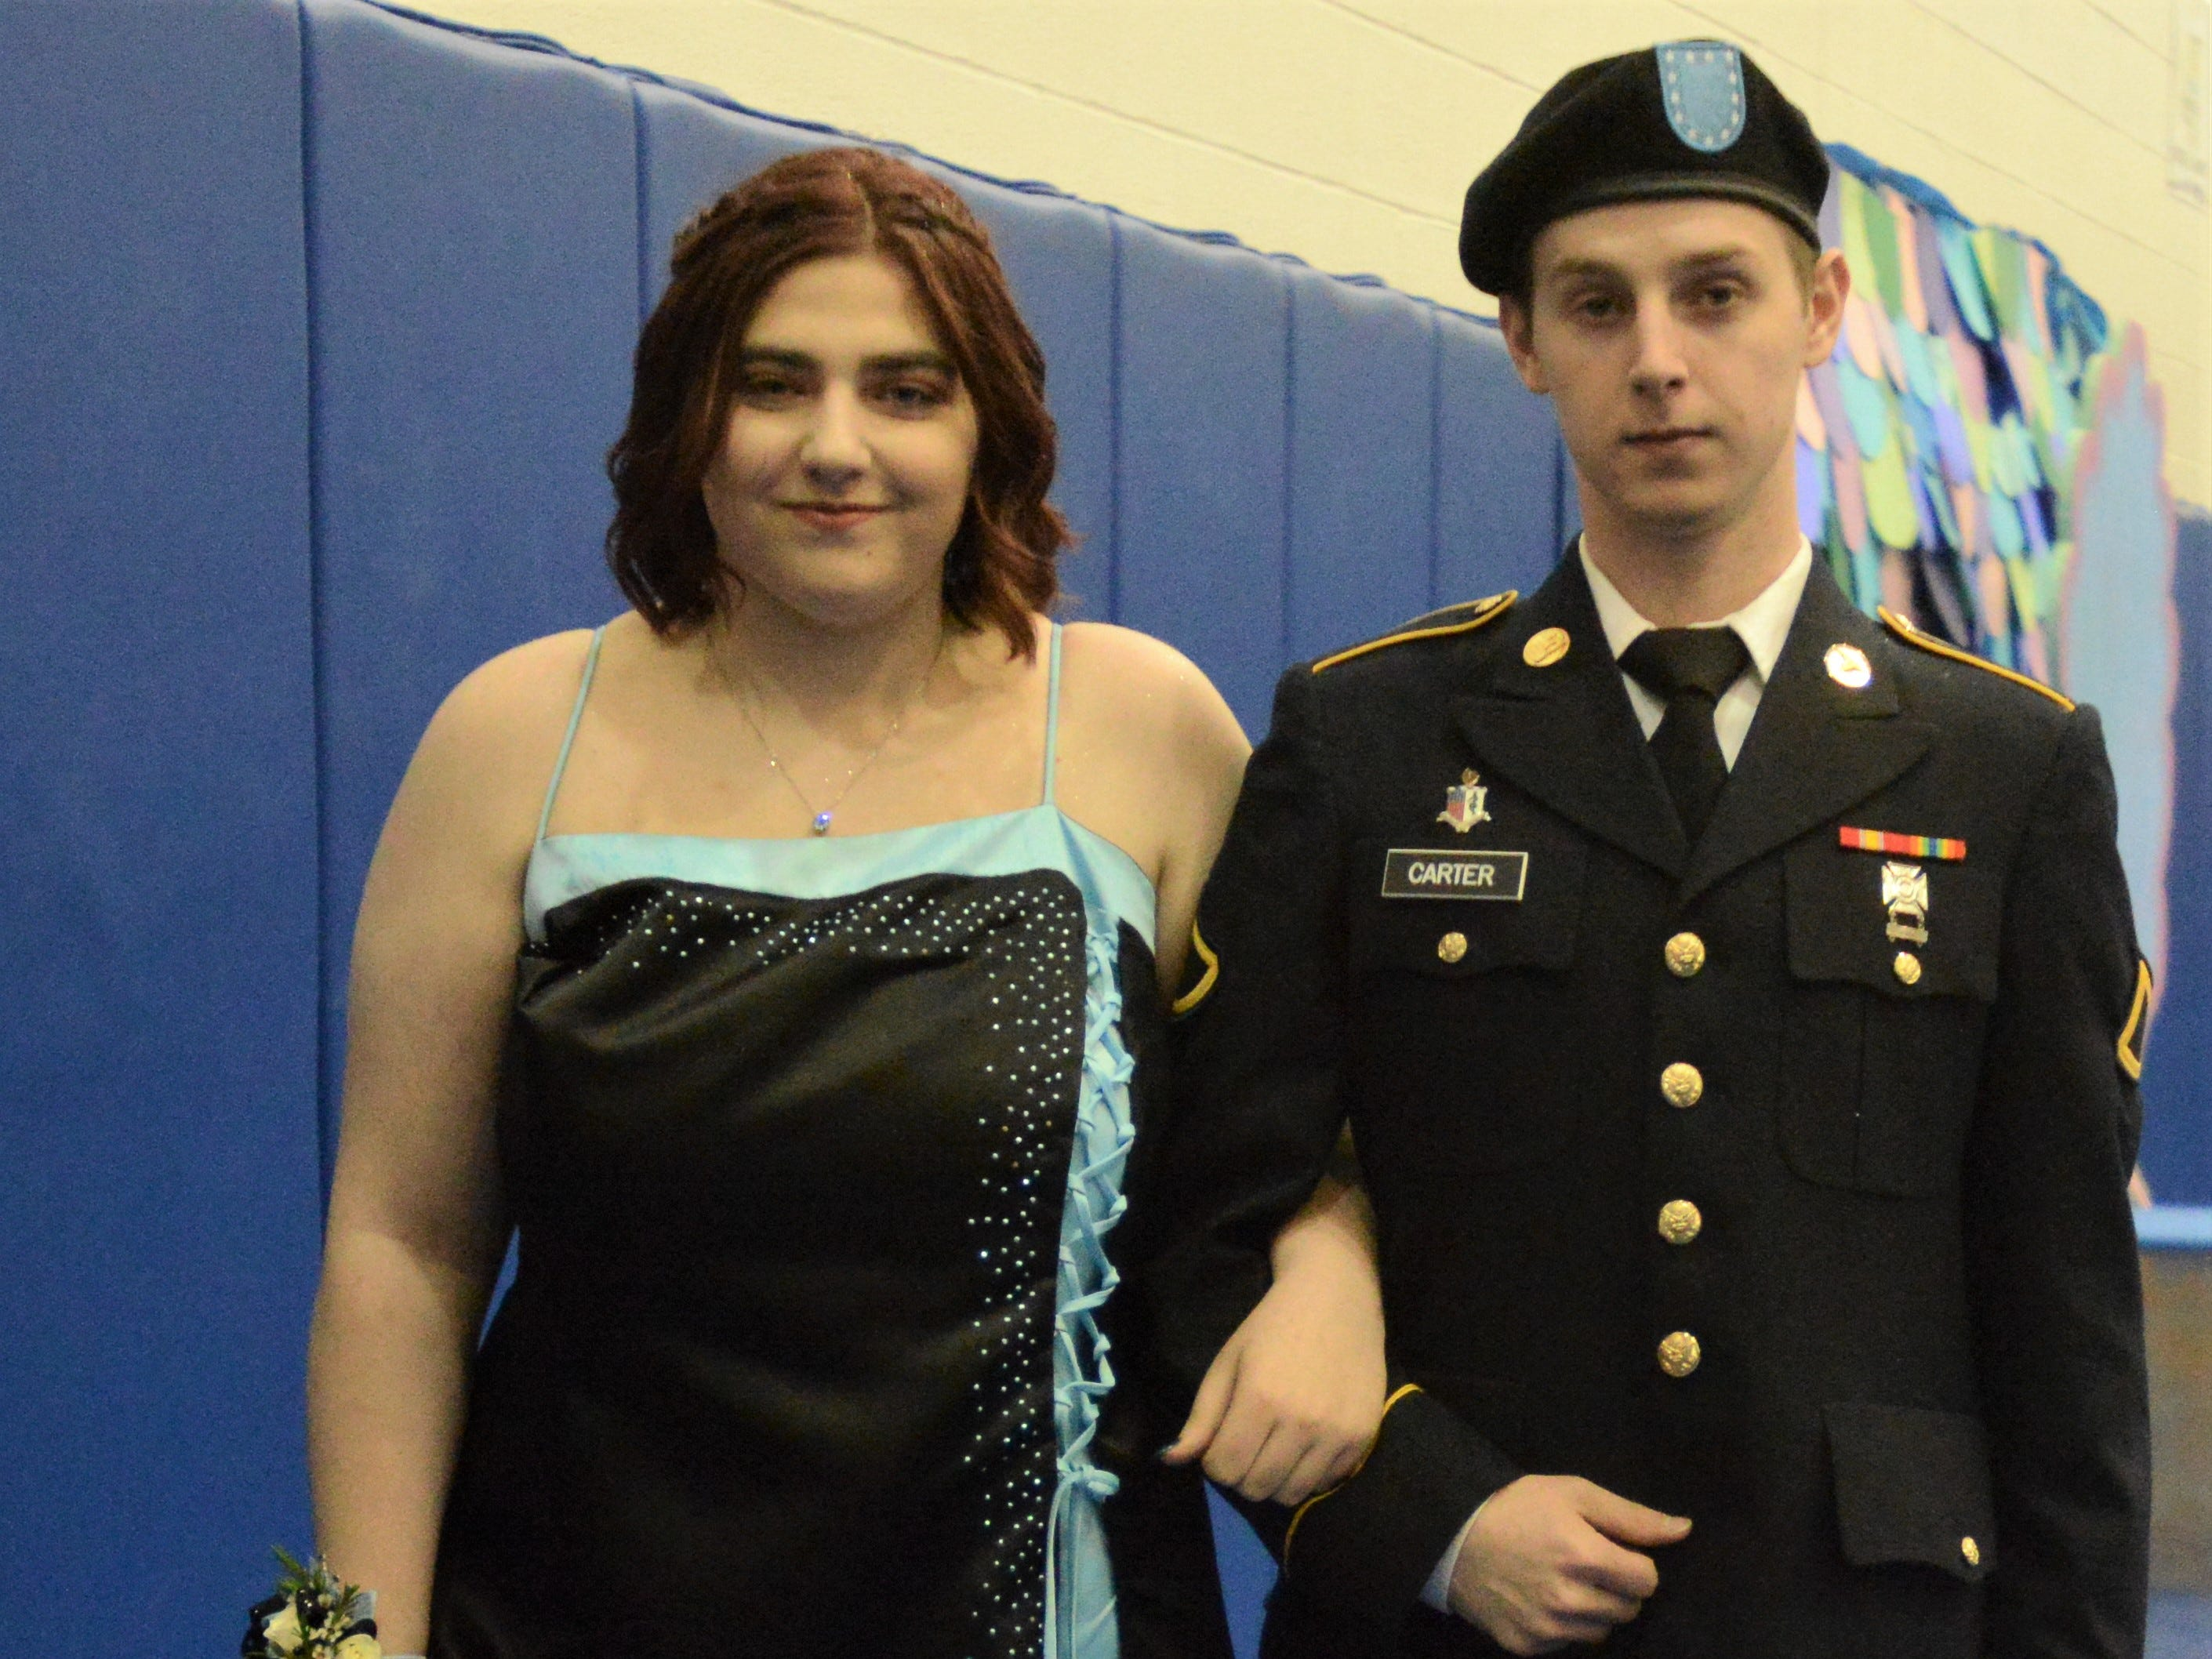 Mystical Waters was the theme of West Muskingum High School's prom Saturday night.